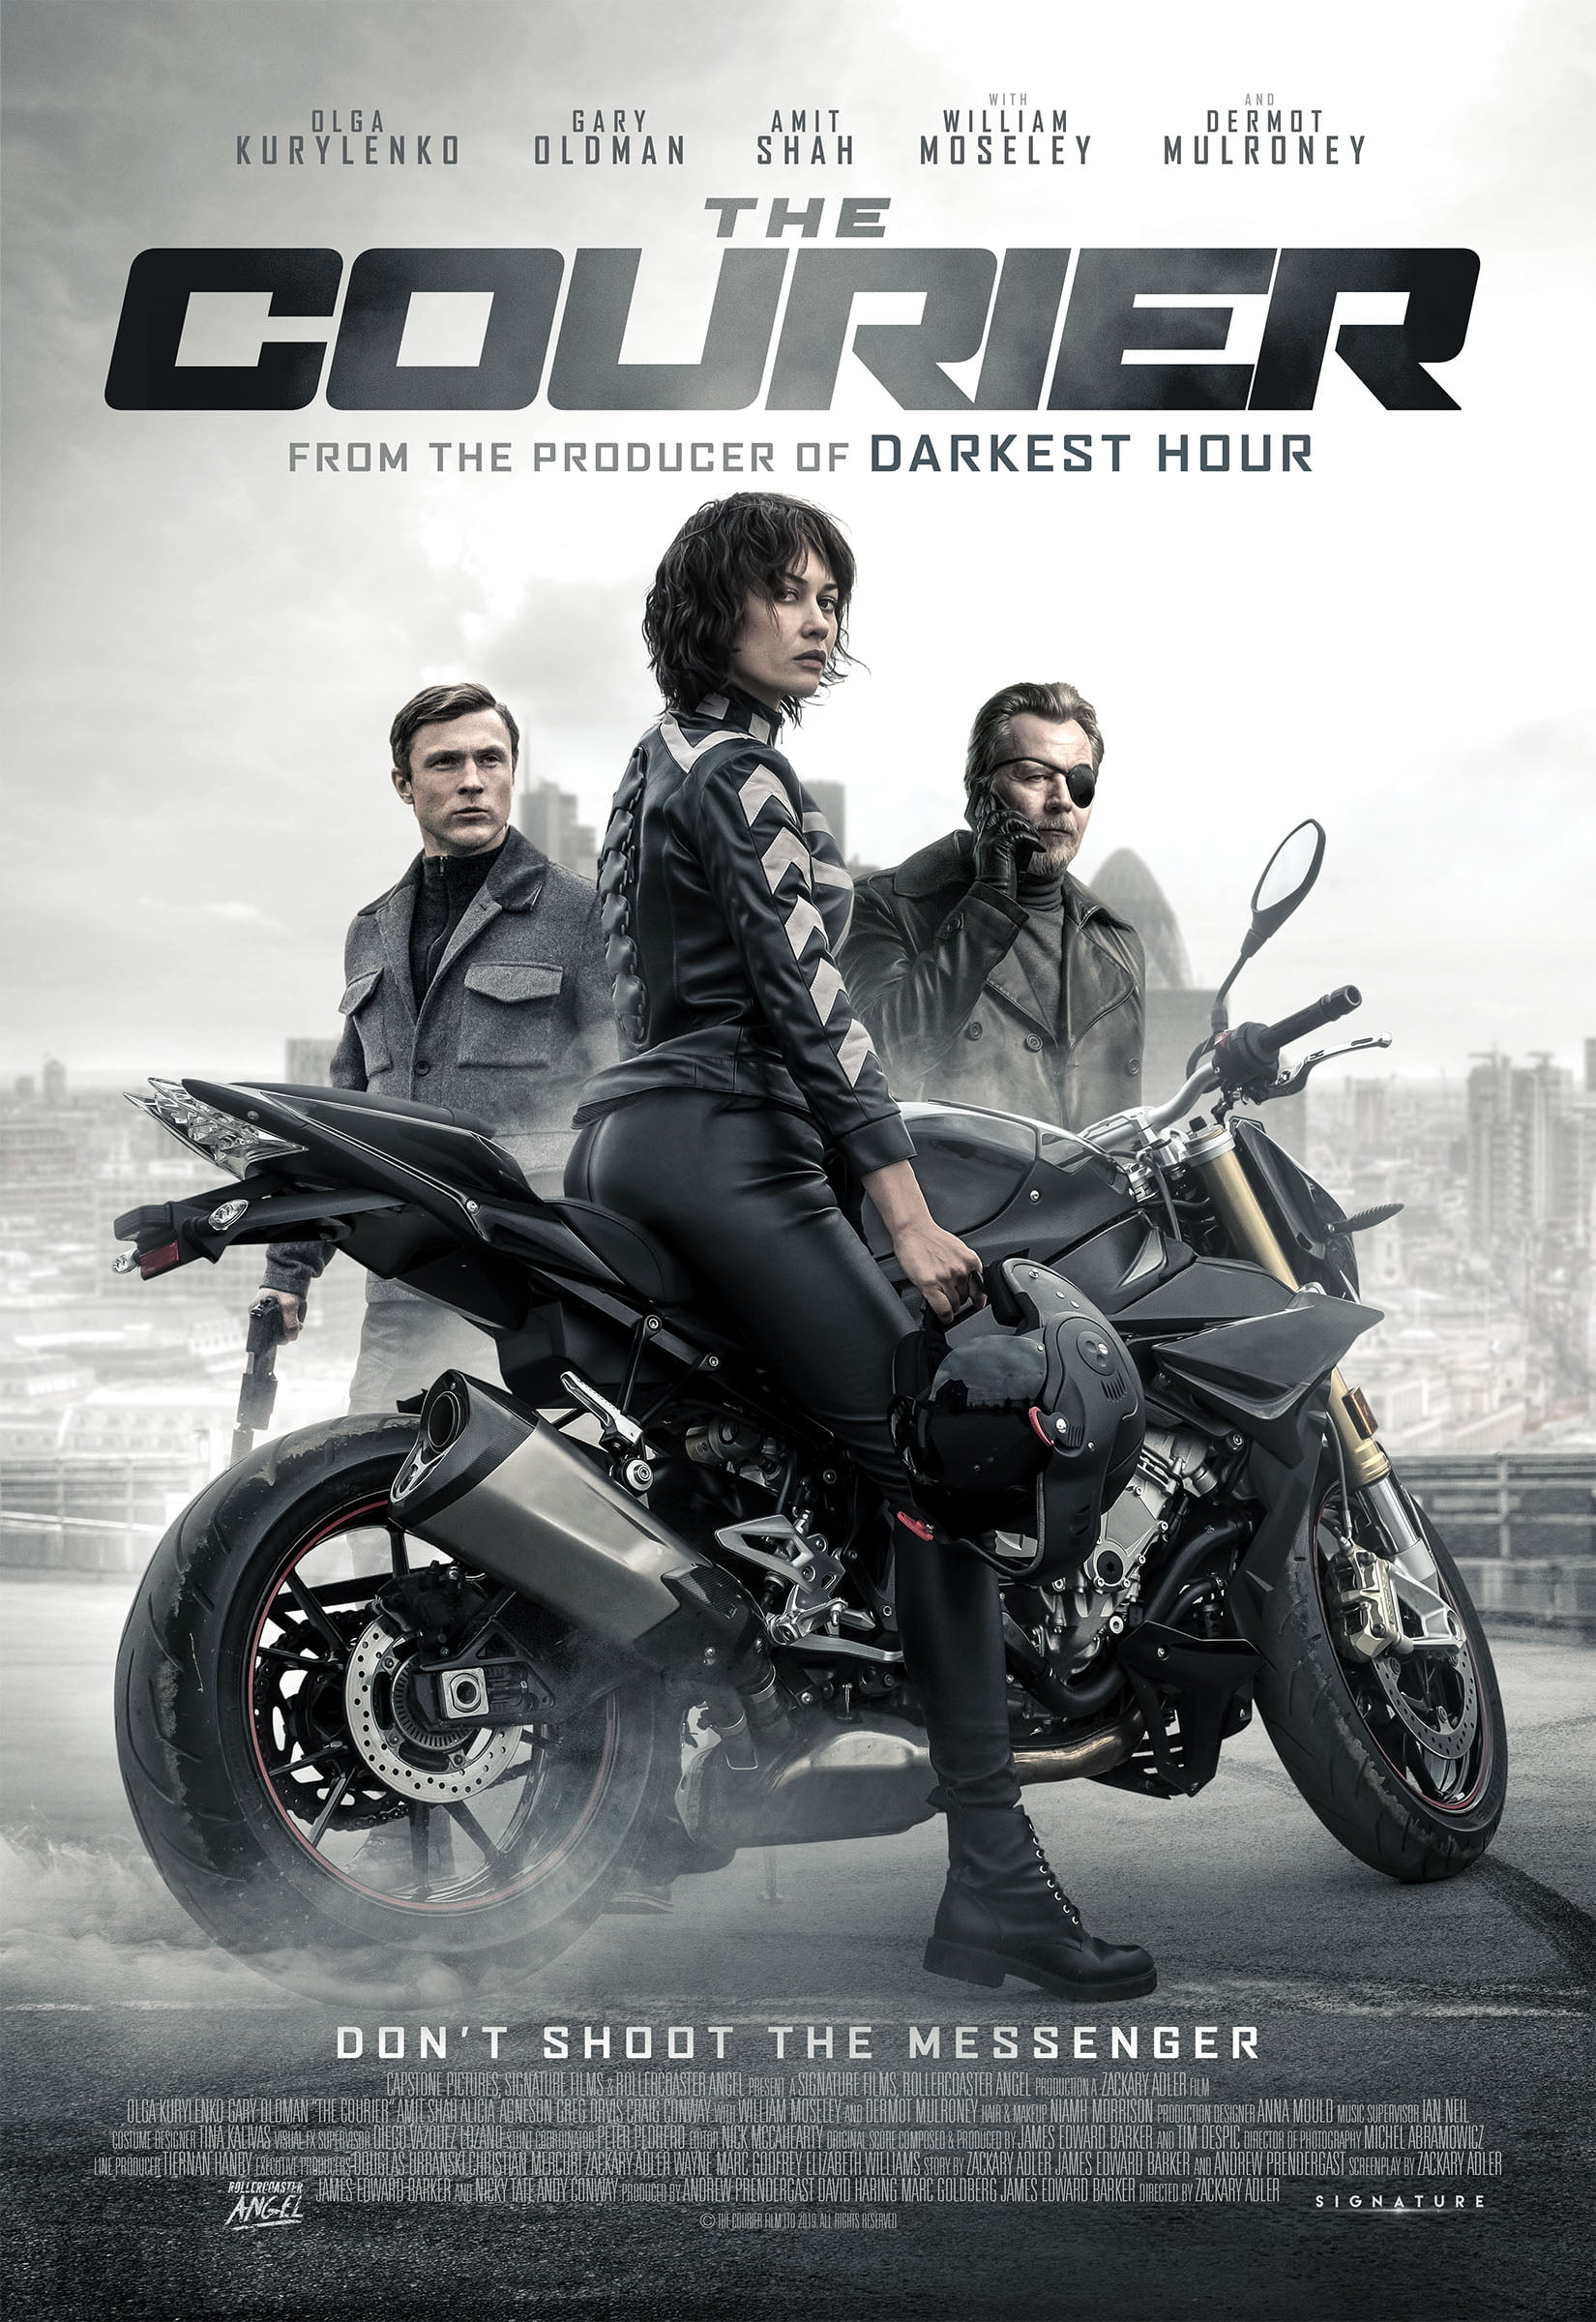 The Courier | DVD | Free shipping over £20 | HMV Store